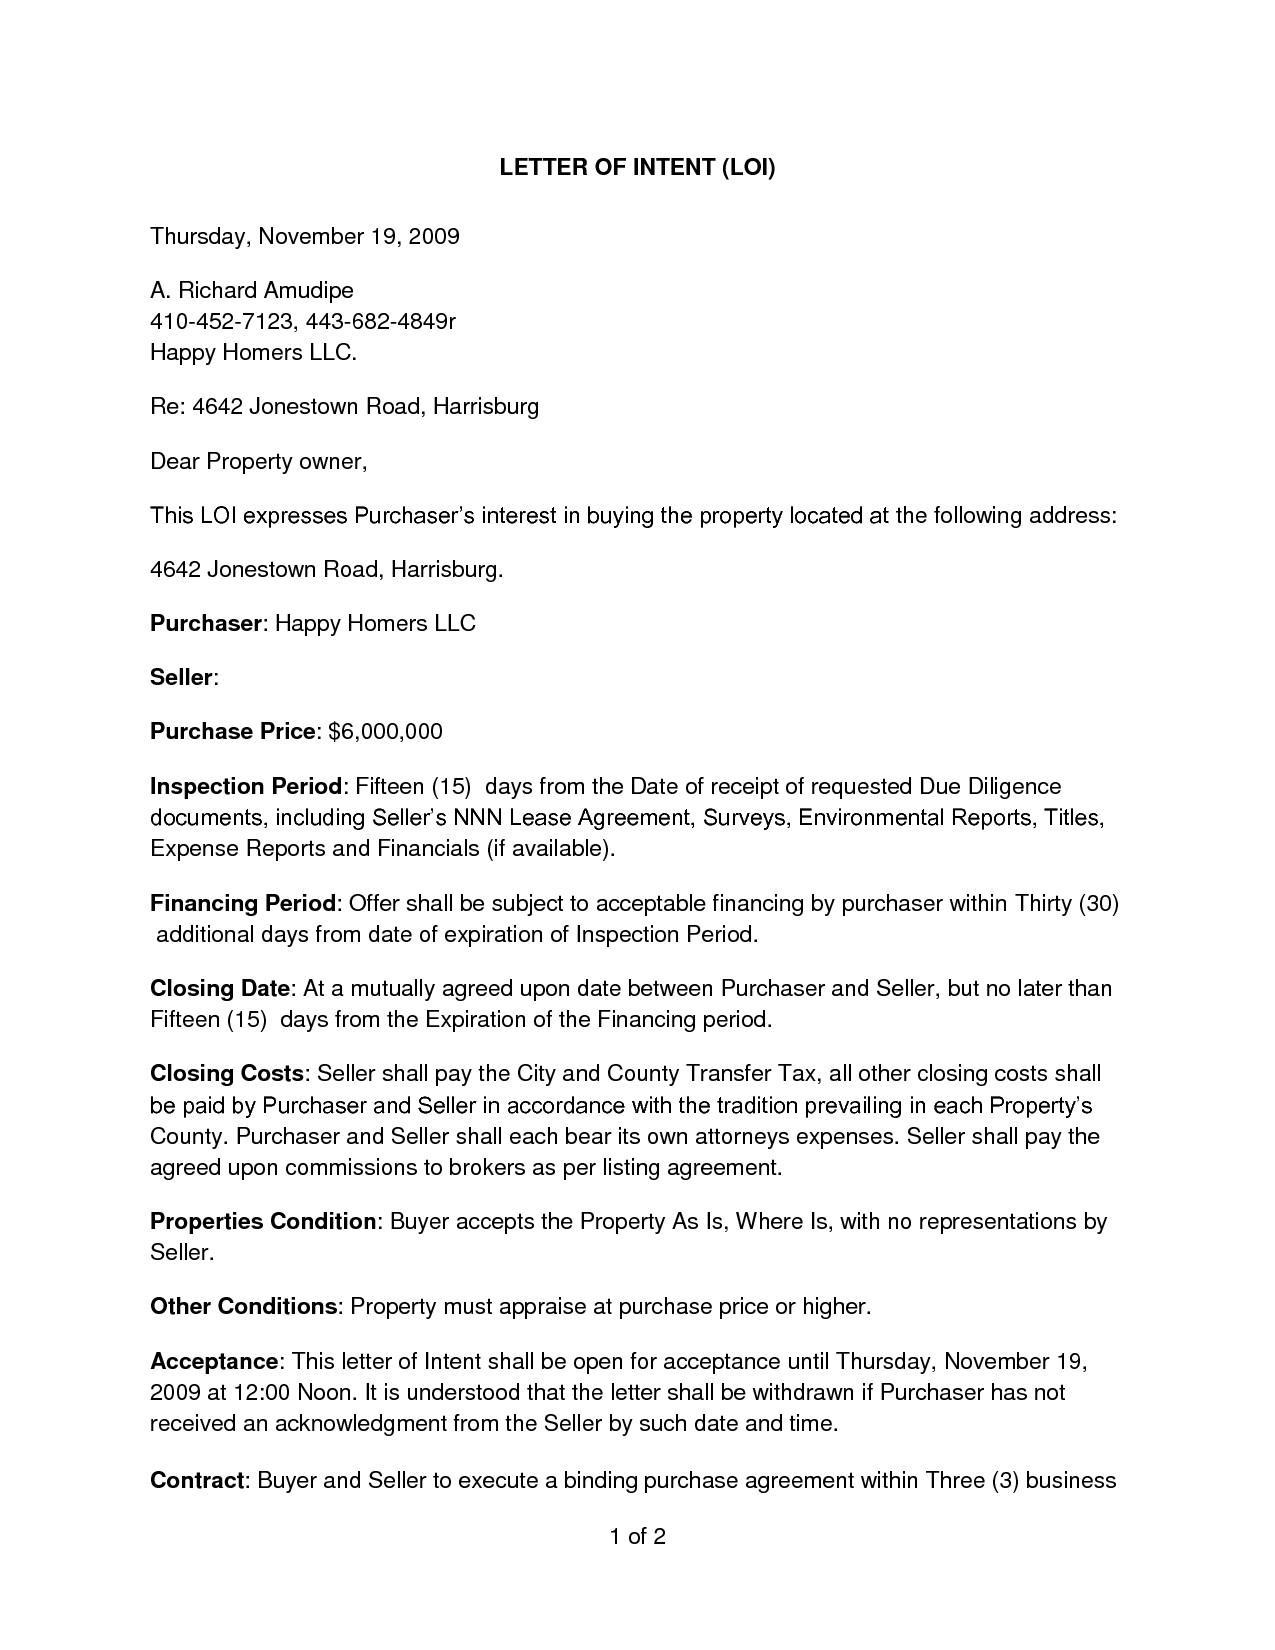 Commercial Real Estate Letter Of Intent to Purchase Template - Letter Intent to Purchase A Business Template Fresh Real Estate